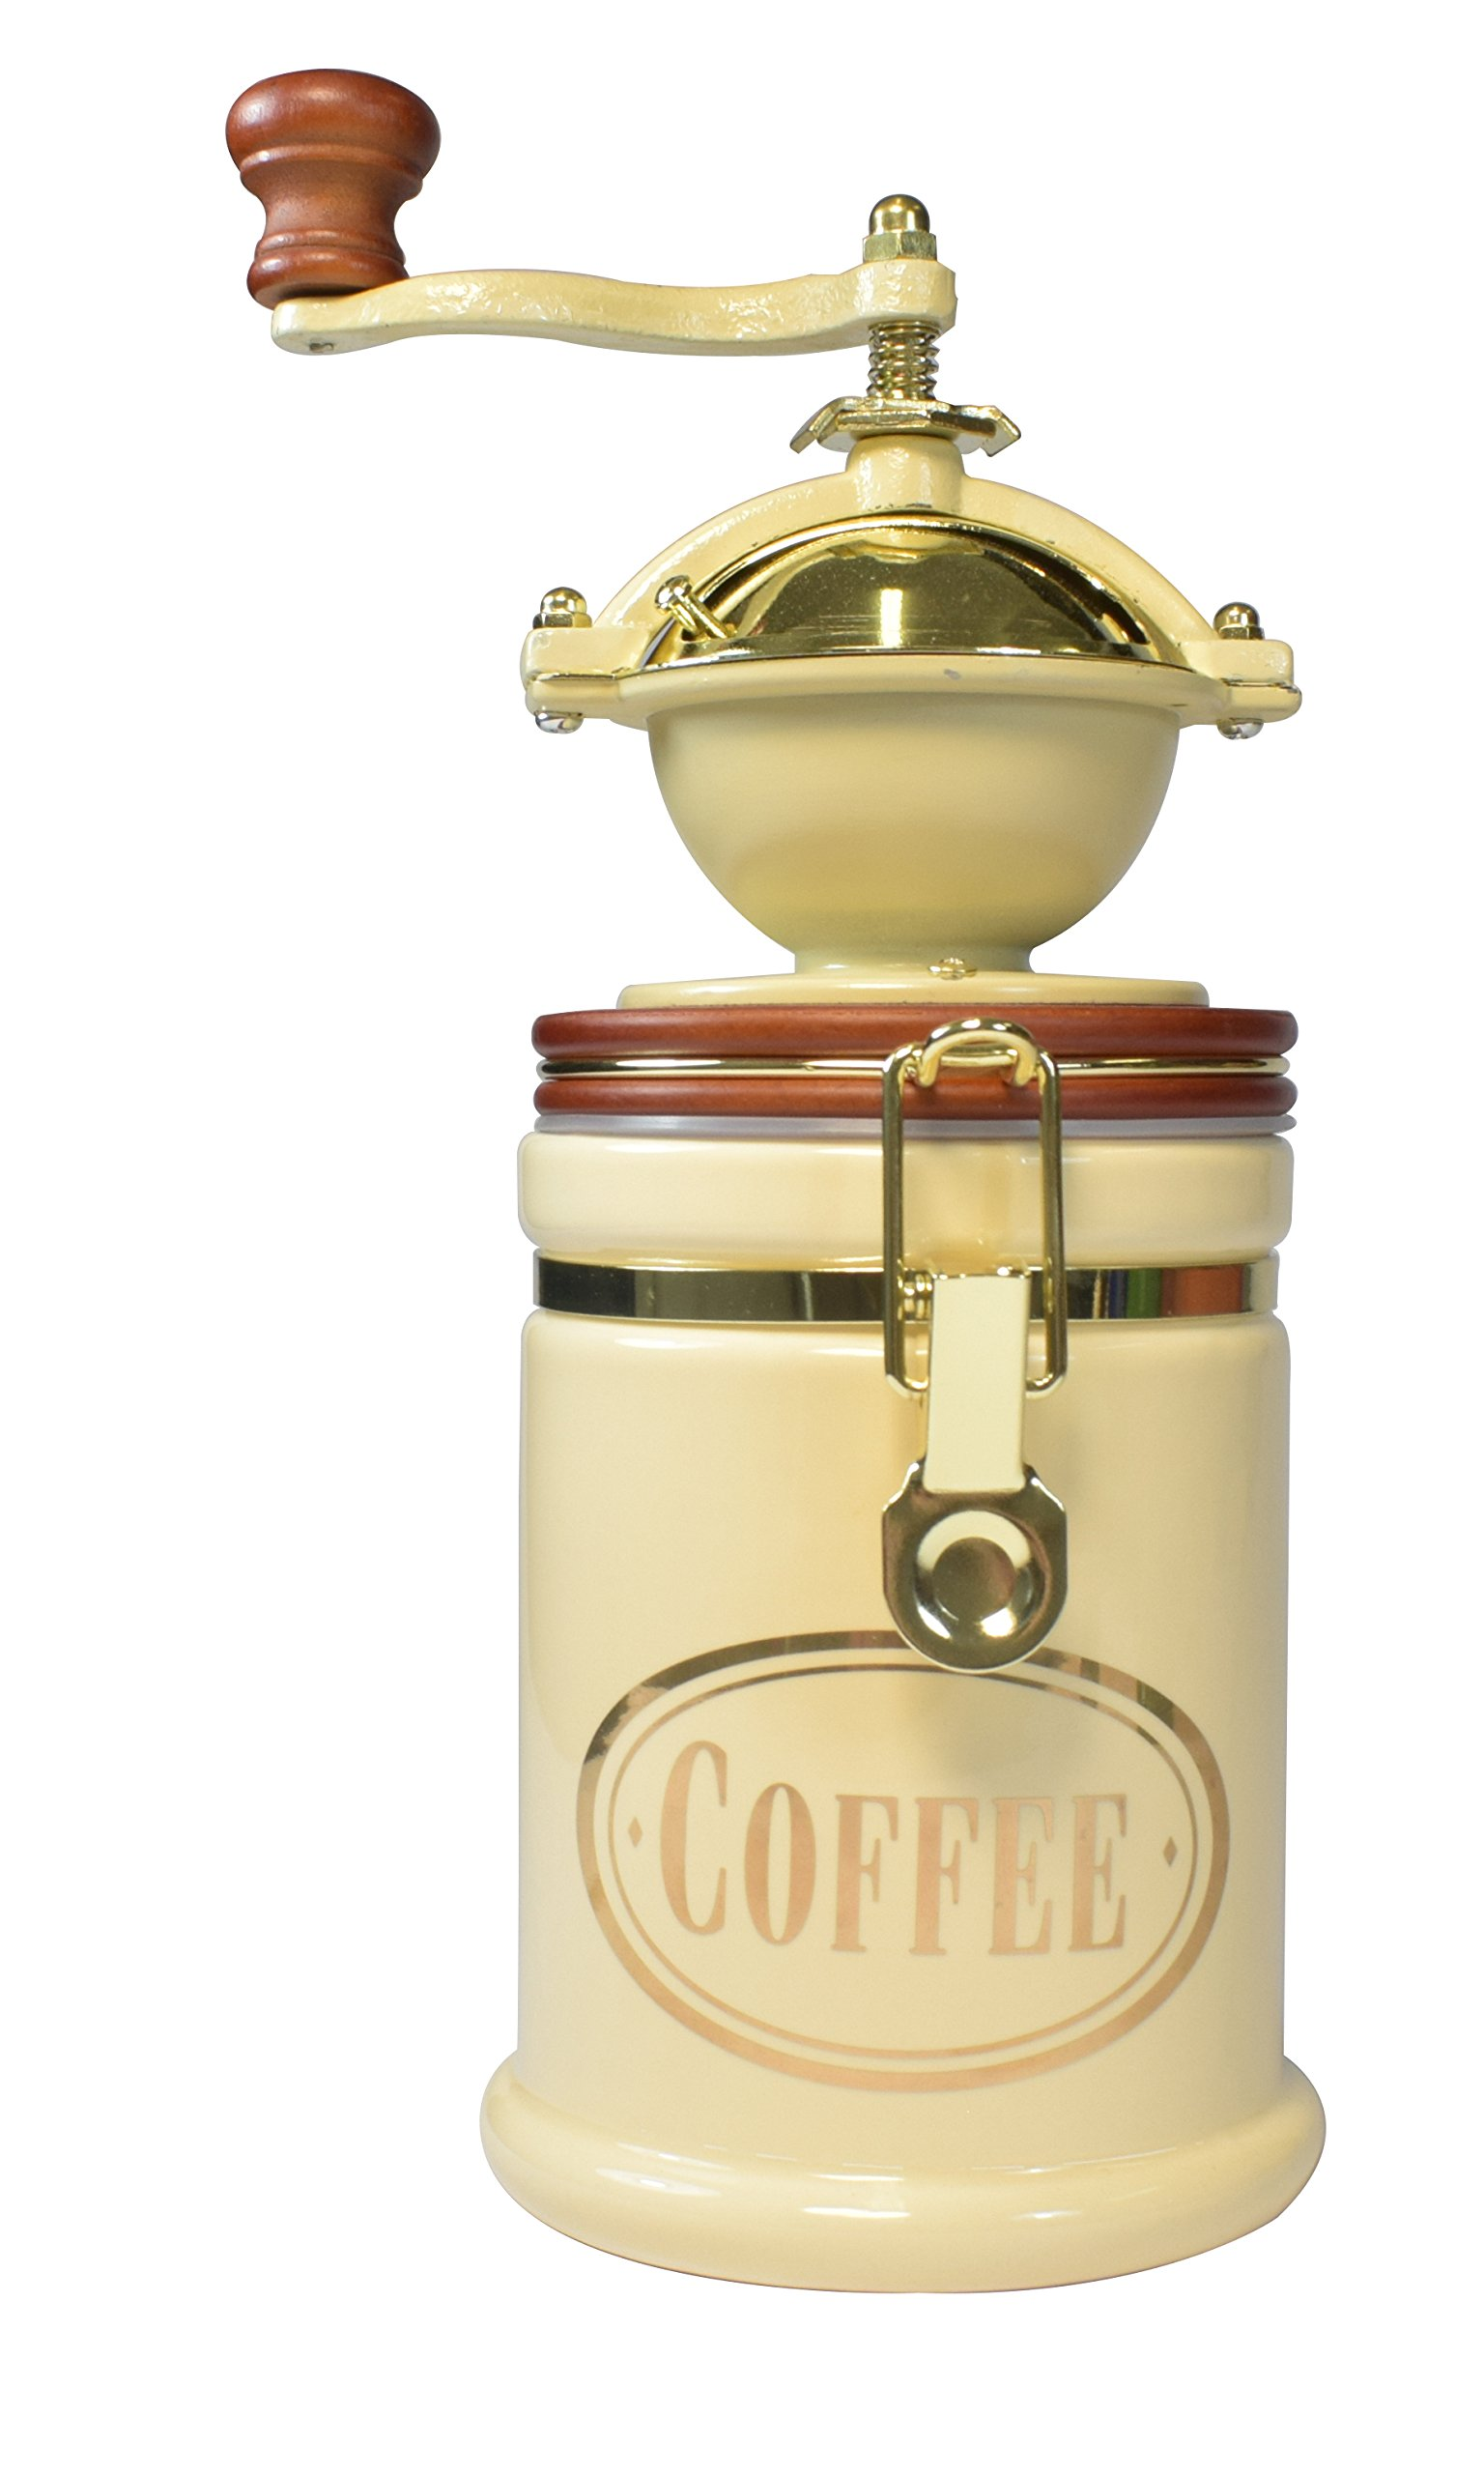 Bisetti 61524 Volluto Coffee Grinder, Cream by bisetti (Image #1)